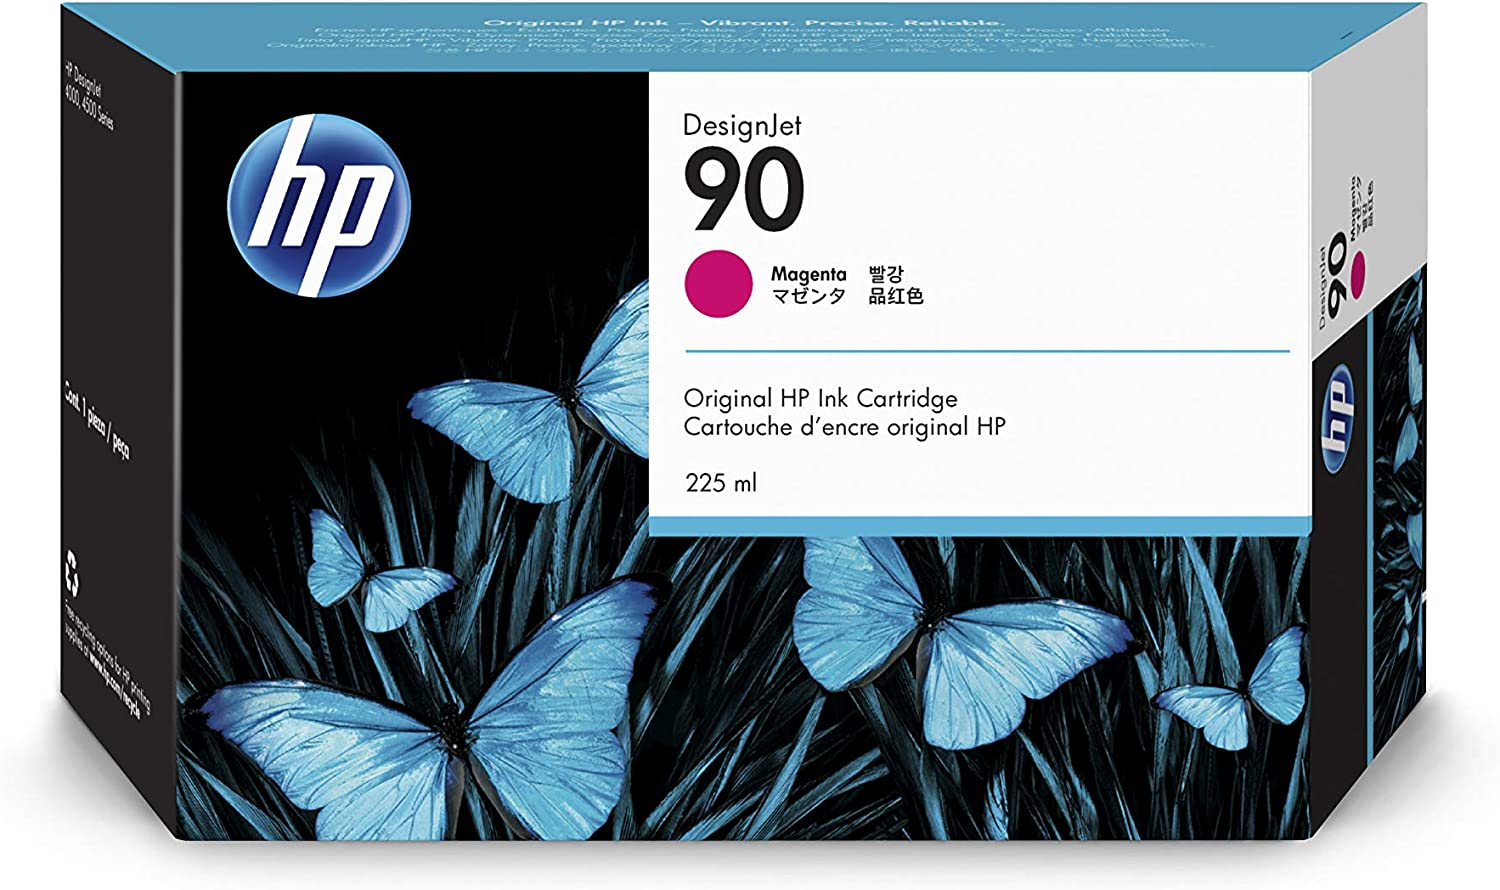 HP 90 Magenta 225-ml Genuine Ink Cartridge (C5062A) for DesignJet 4500 MFP, 4500 & 4000 Series Large Format Printers